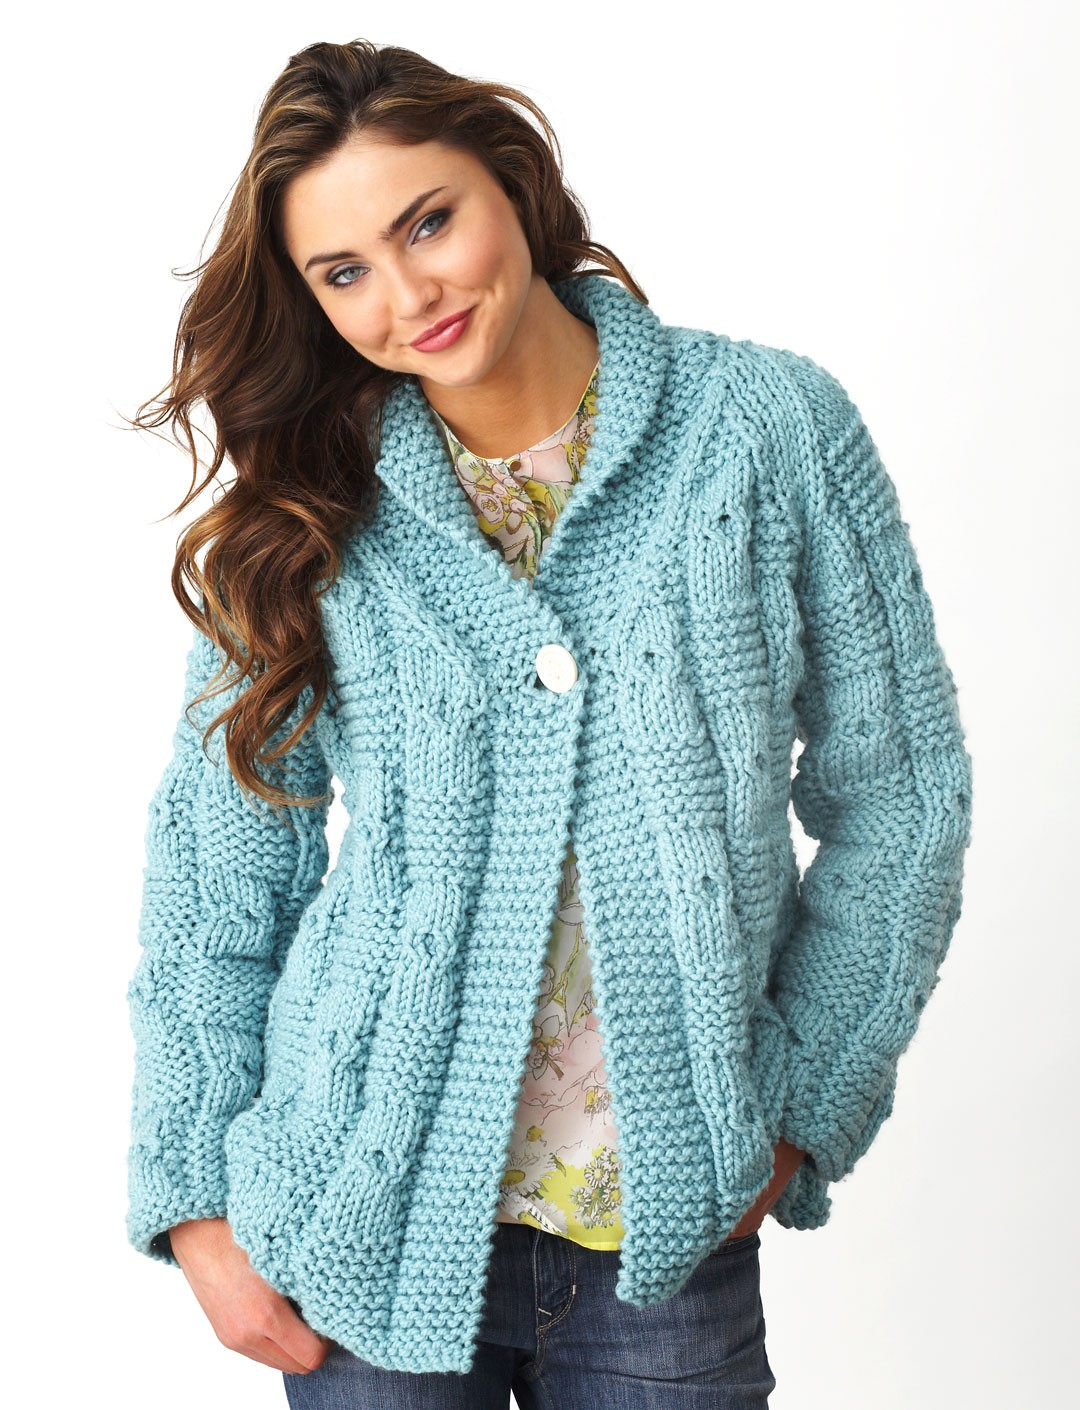 Chunky Cardigan Knitting Pattern : Bernat textured checks cardigan knit pattern yarnspirations